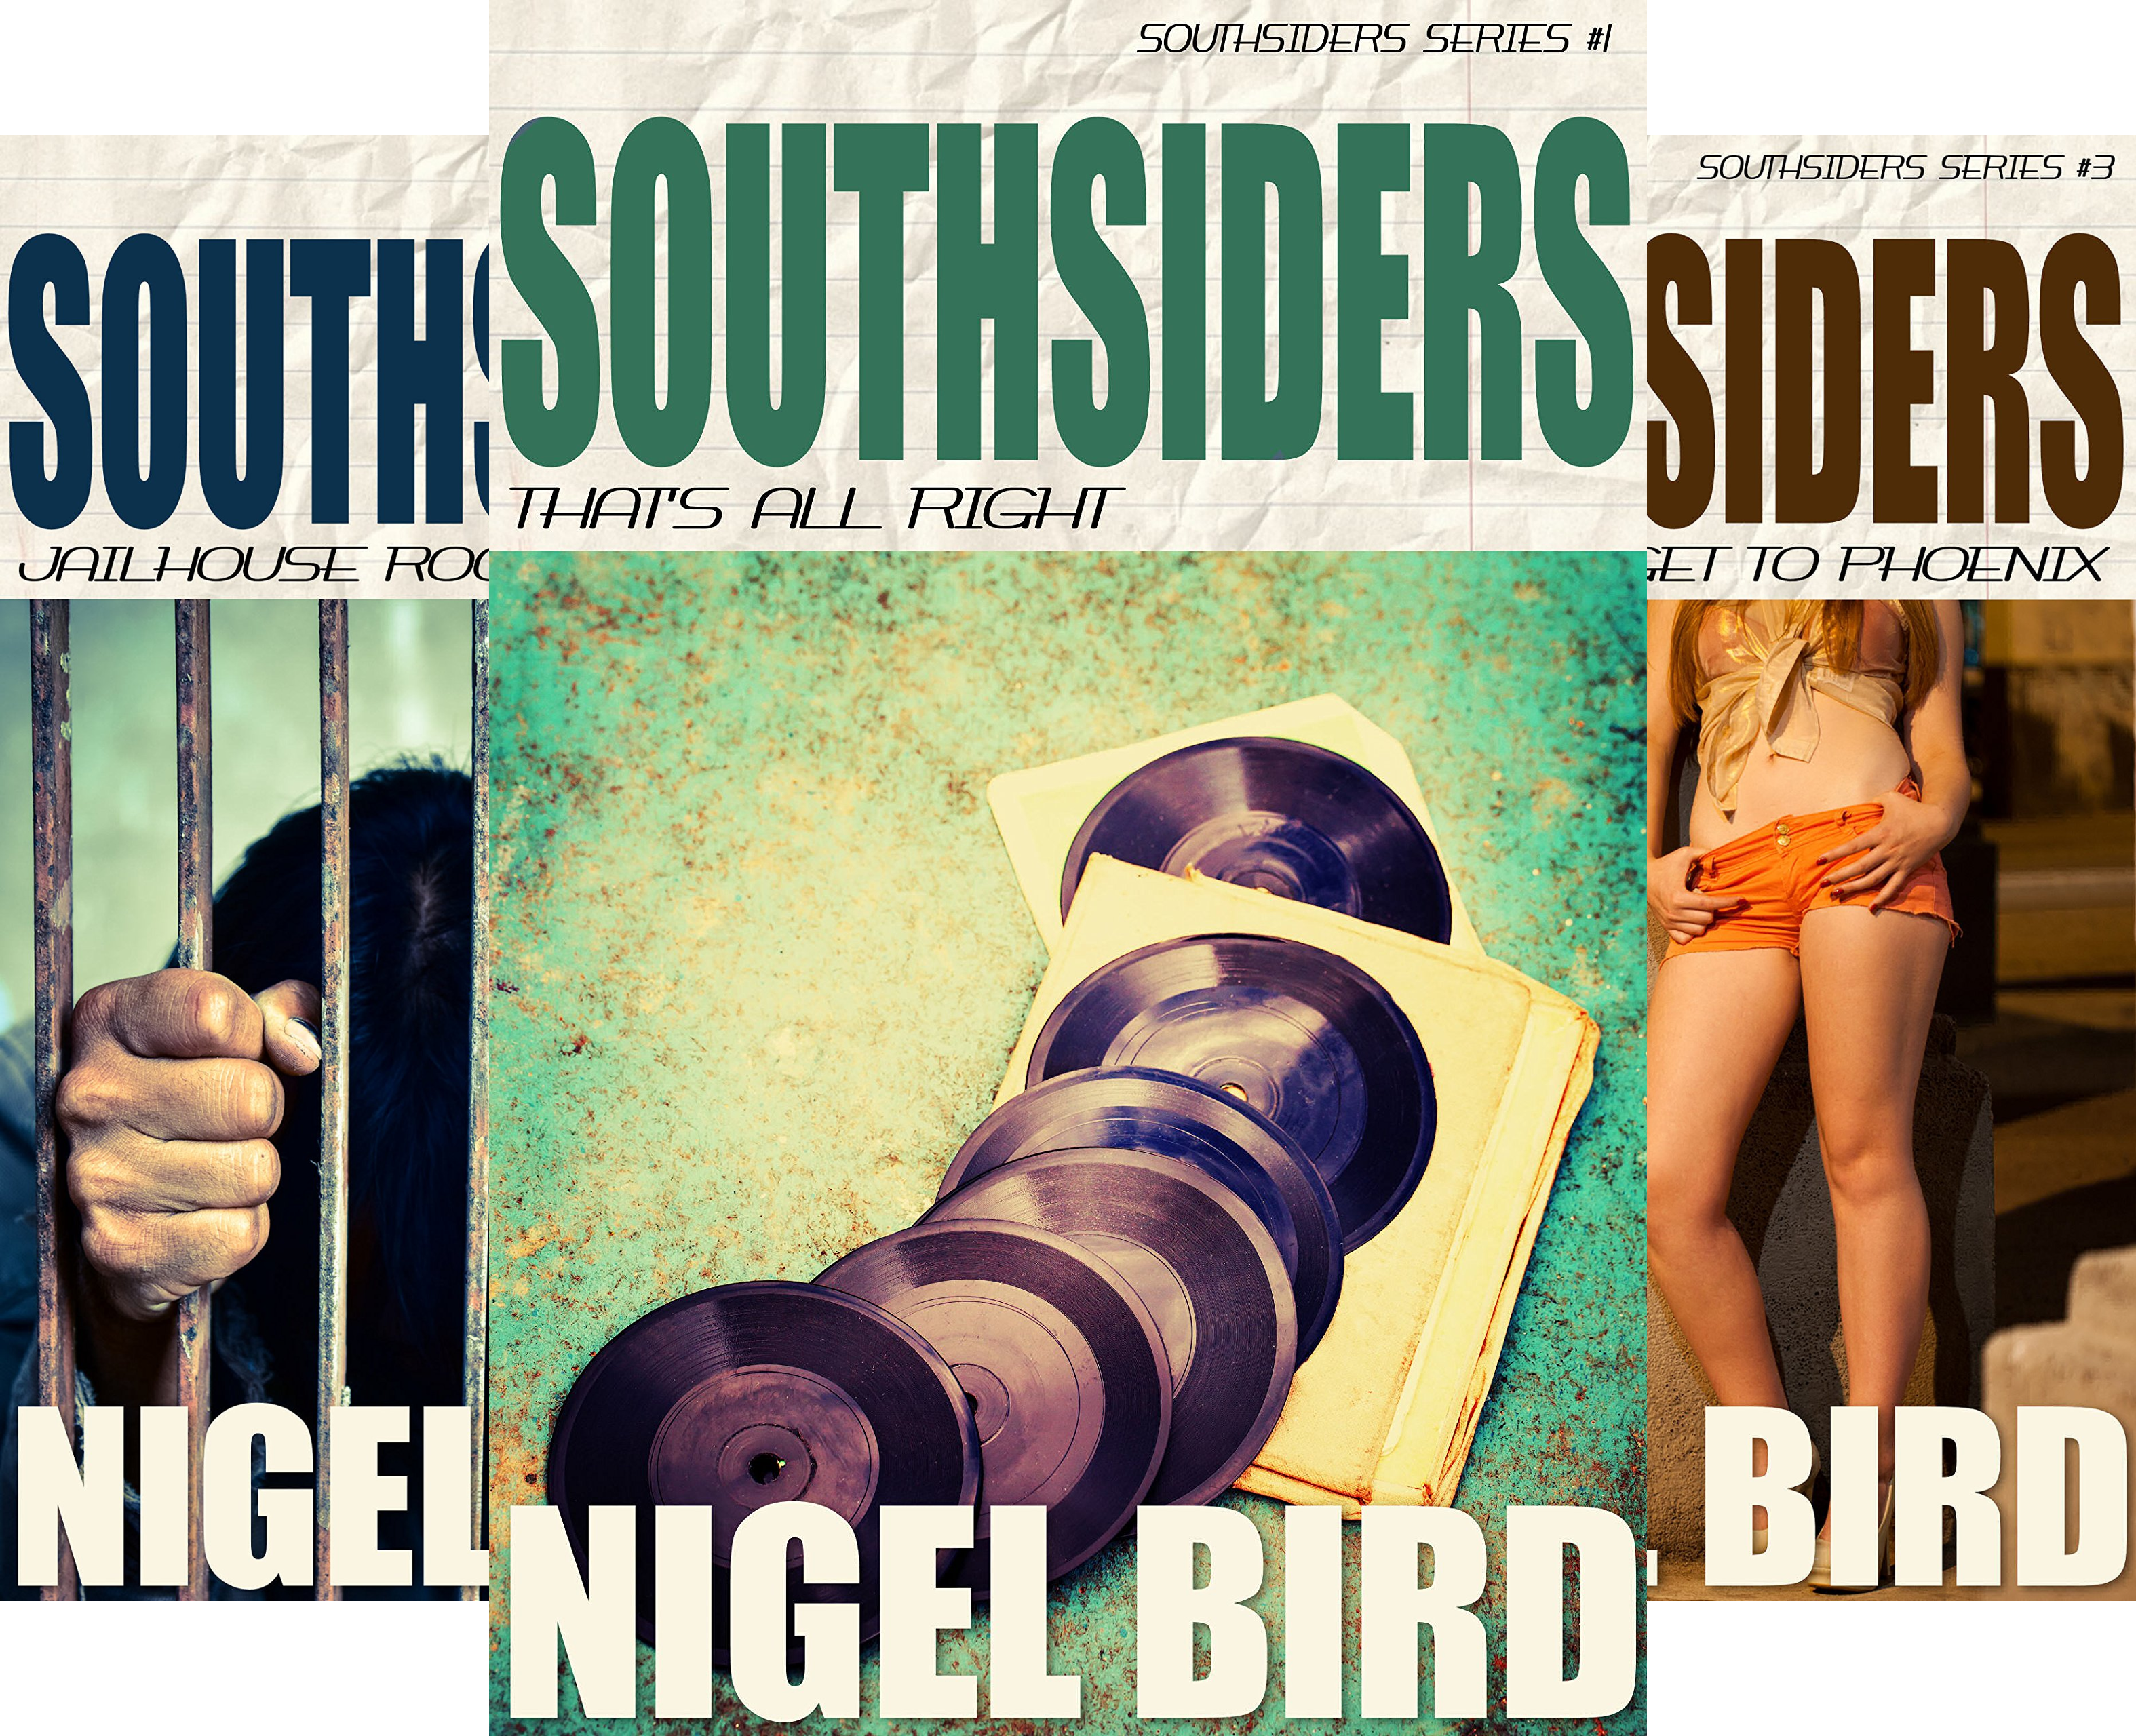 Southsiders (3 Book Series)